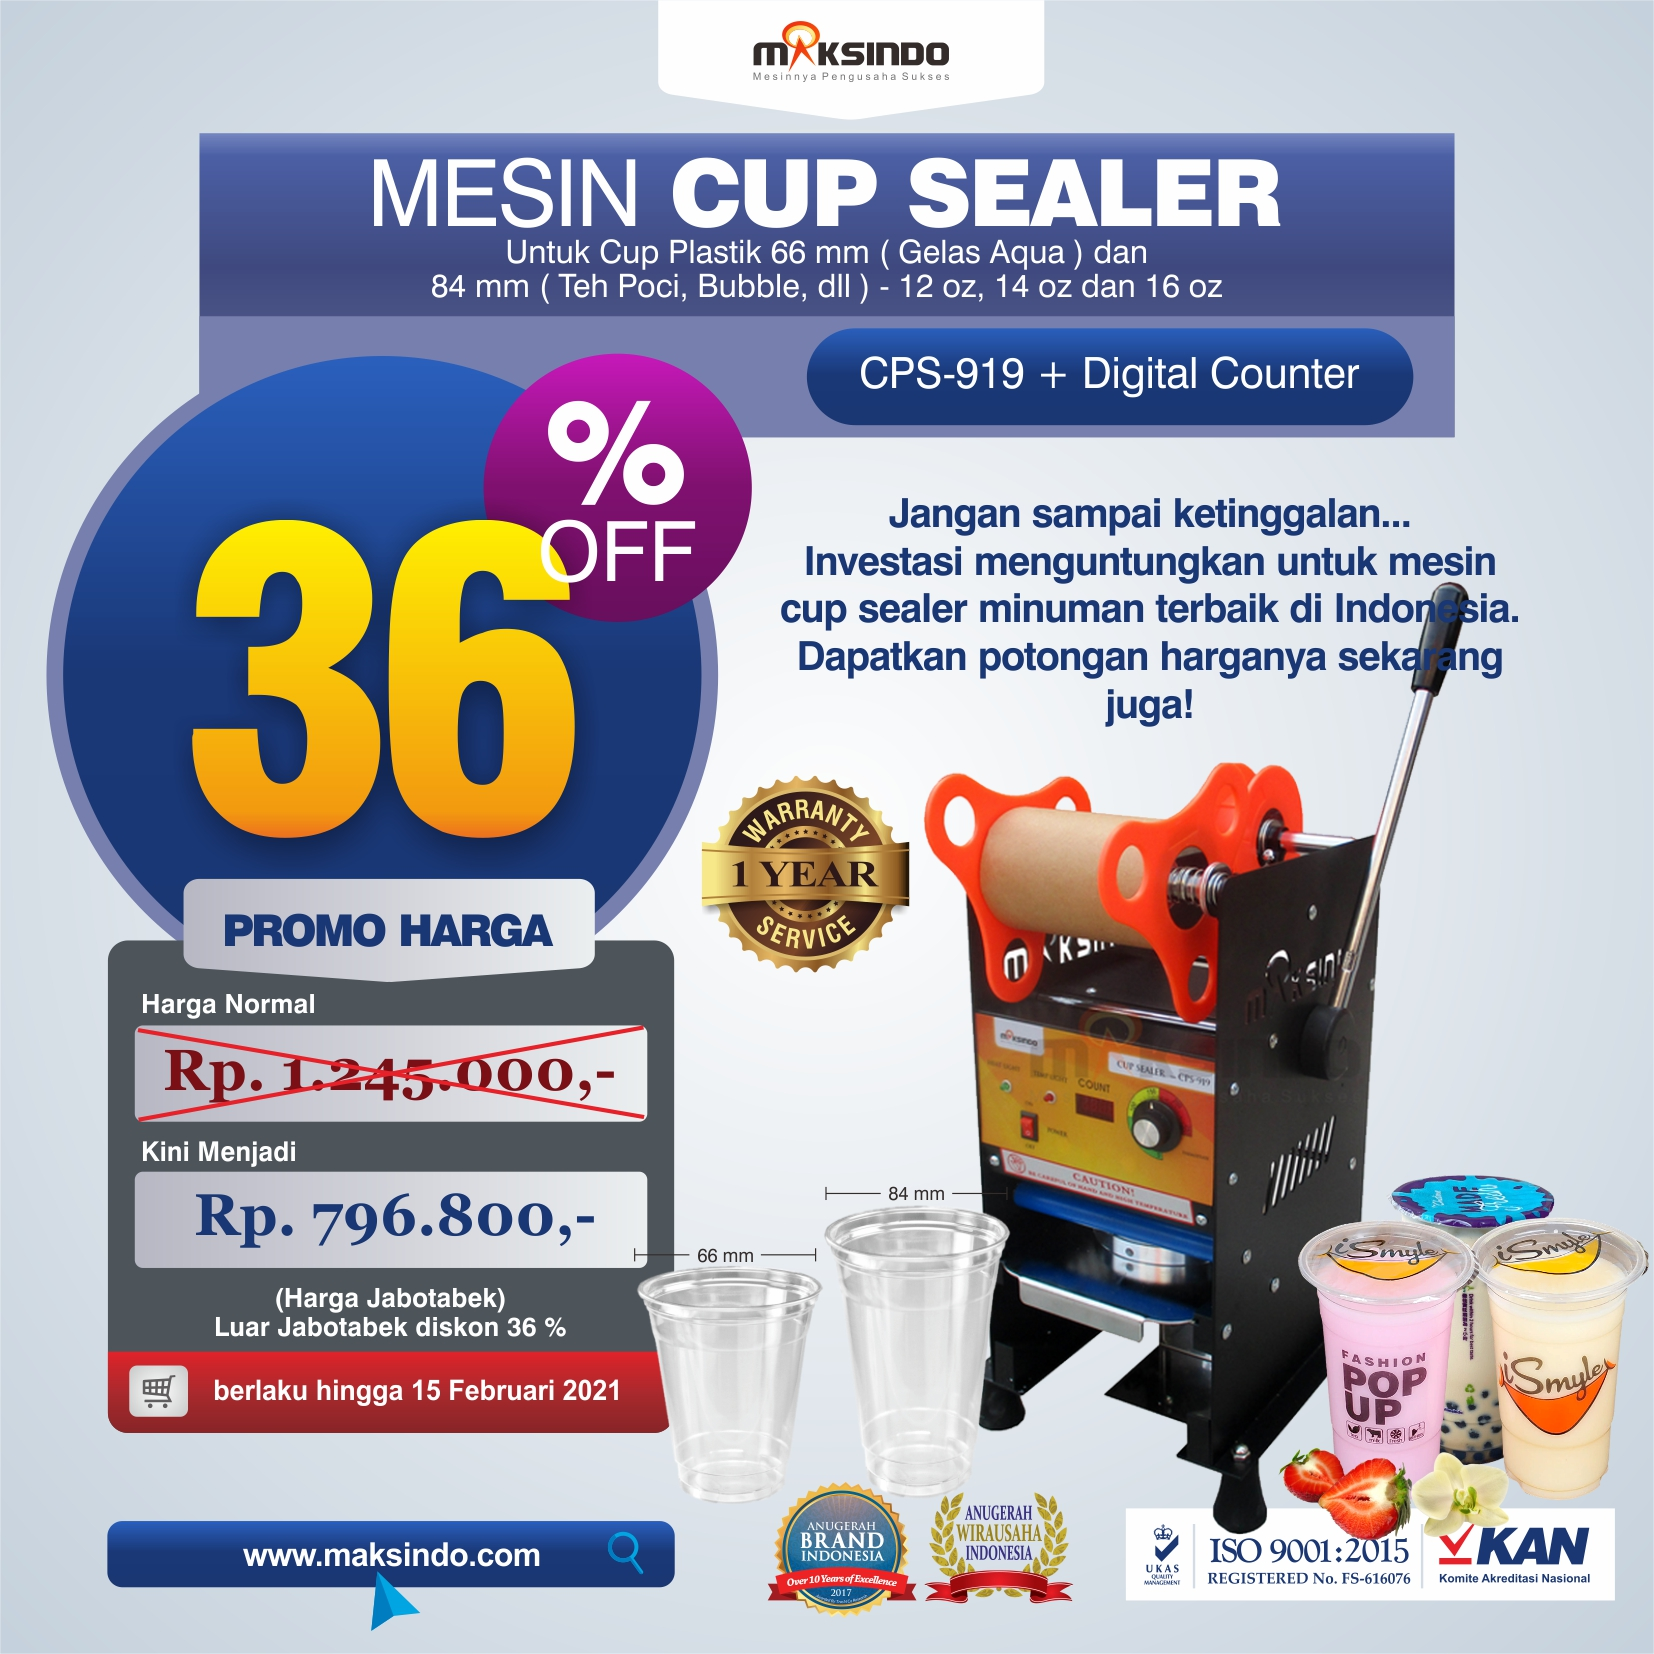 Mesin Cup Sealer Manual